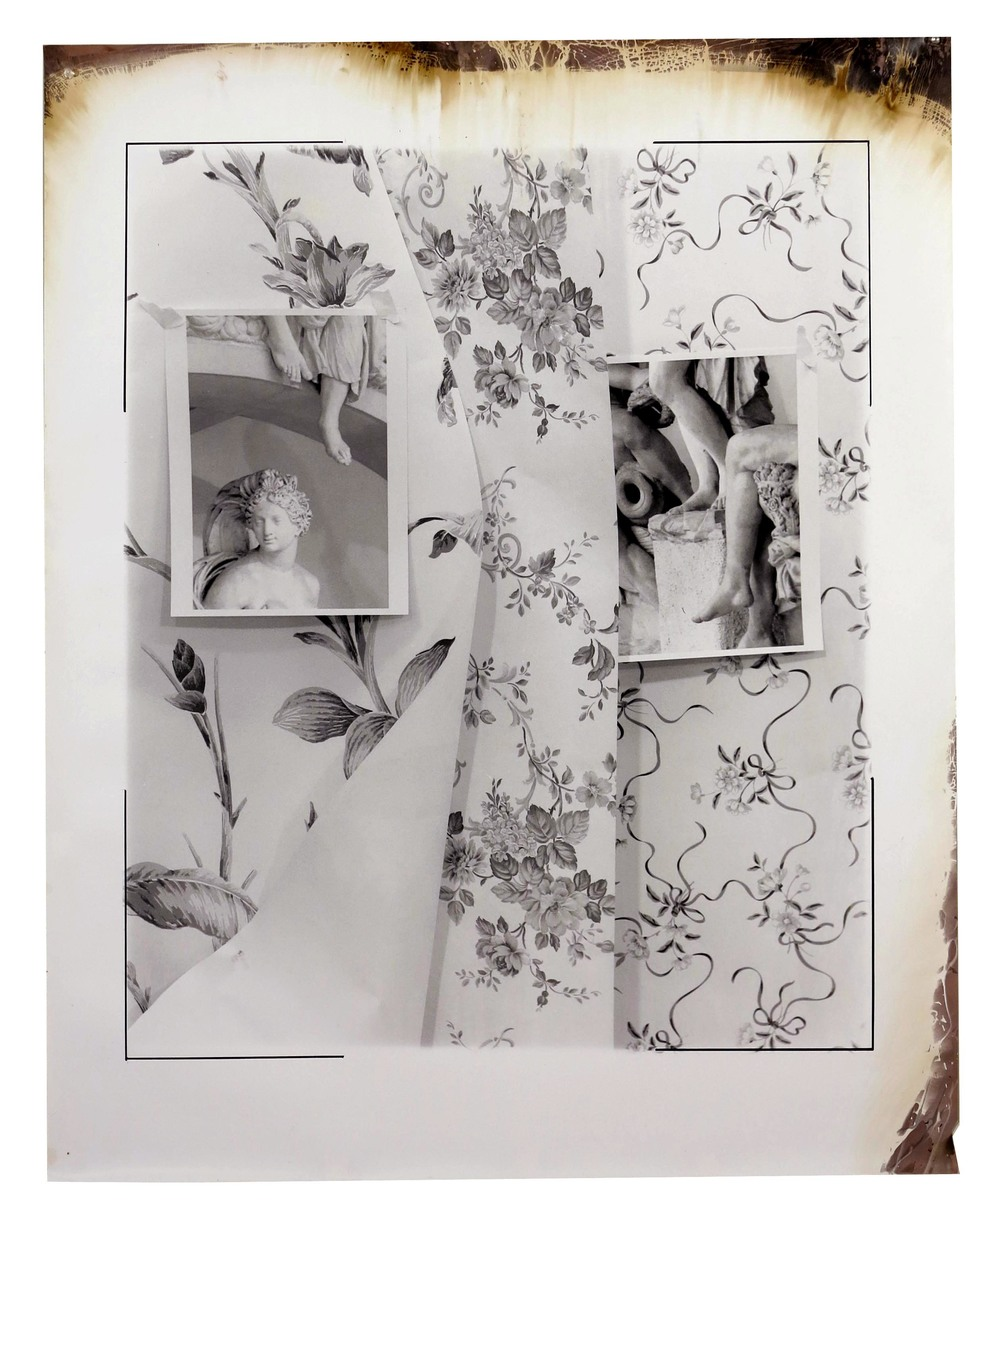 Ammannati Sculpture and Wallpaper I  2014  gelatin silver print  41.5 x 33 inches